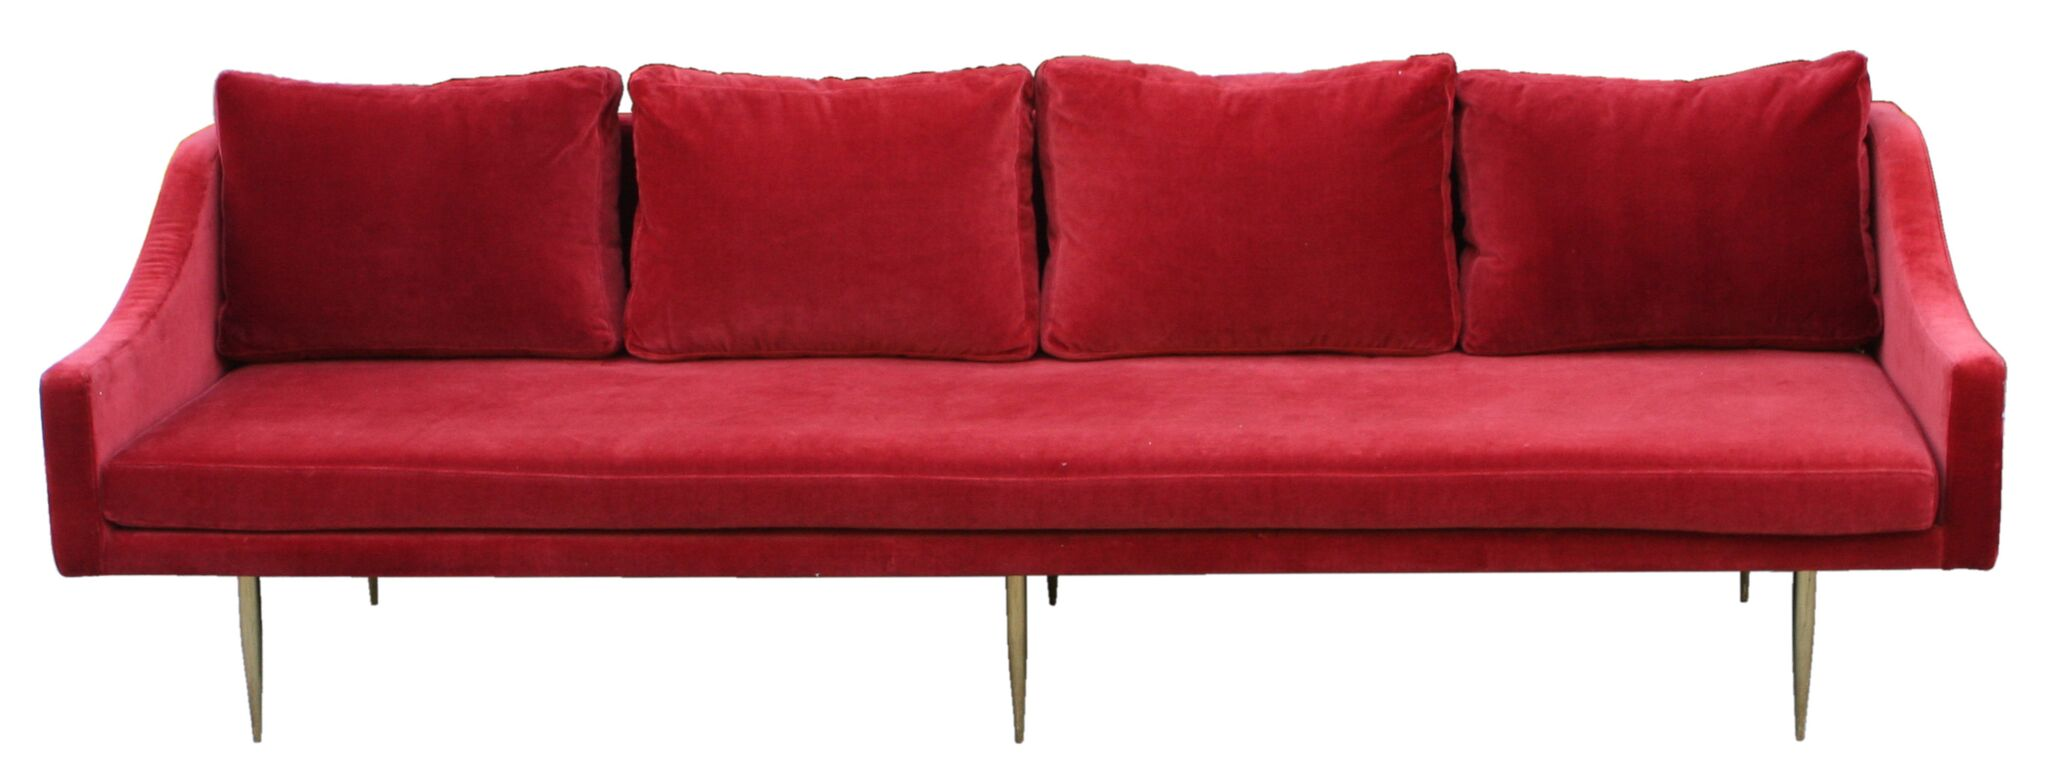 Retro Red Velvet Sofa